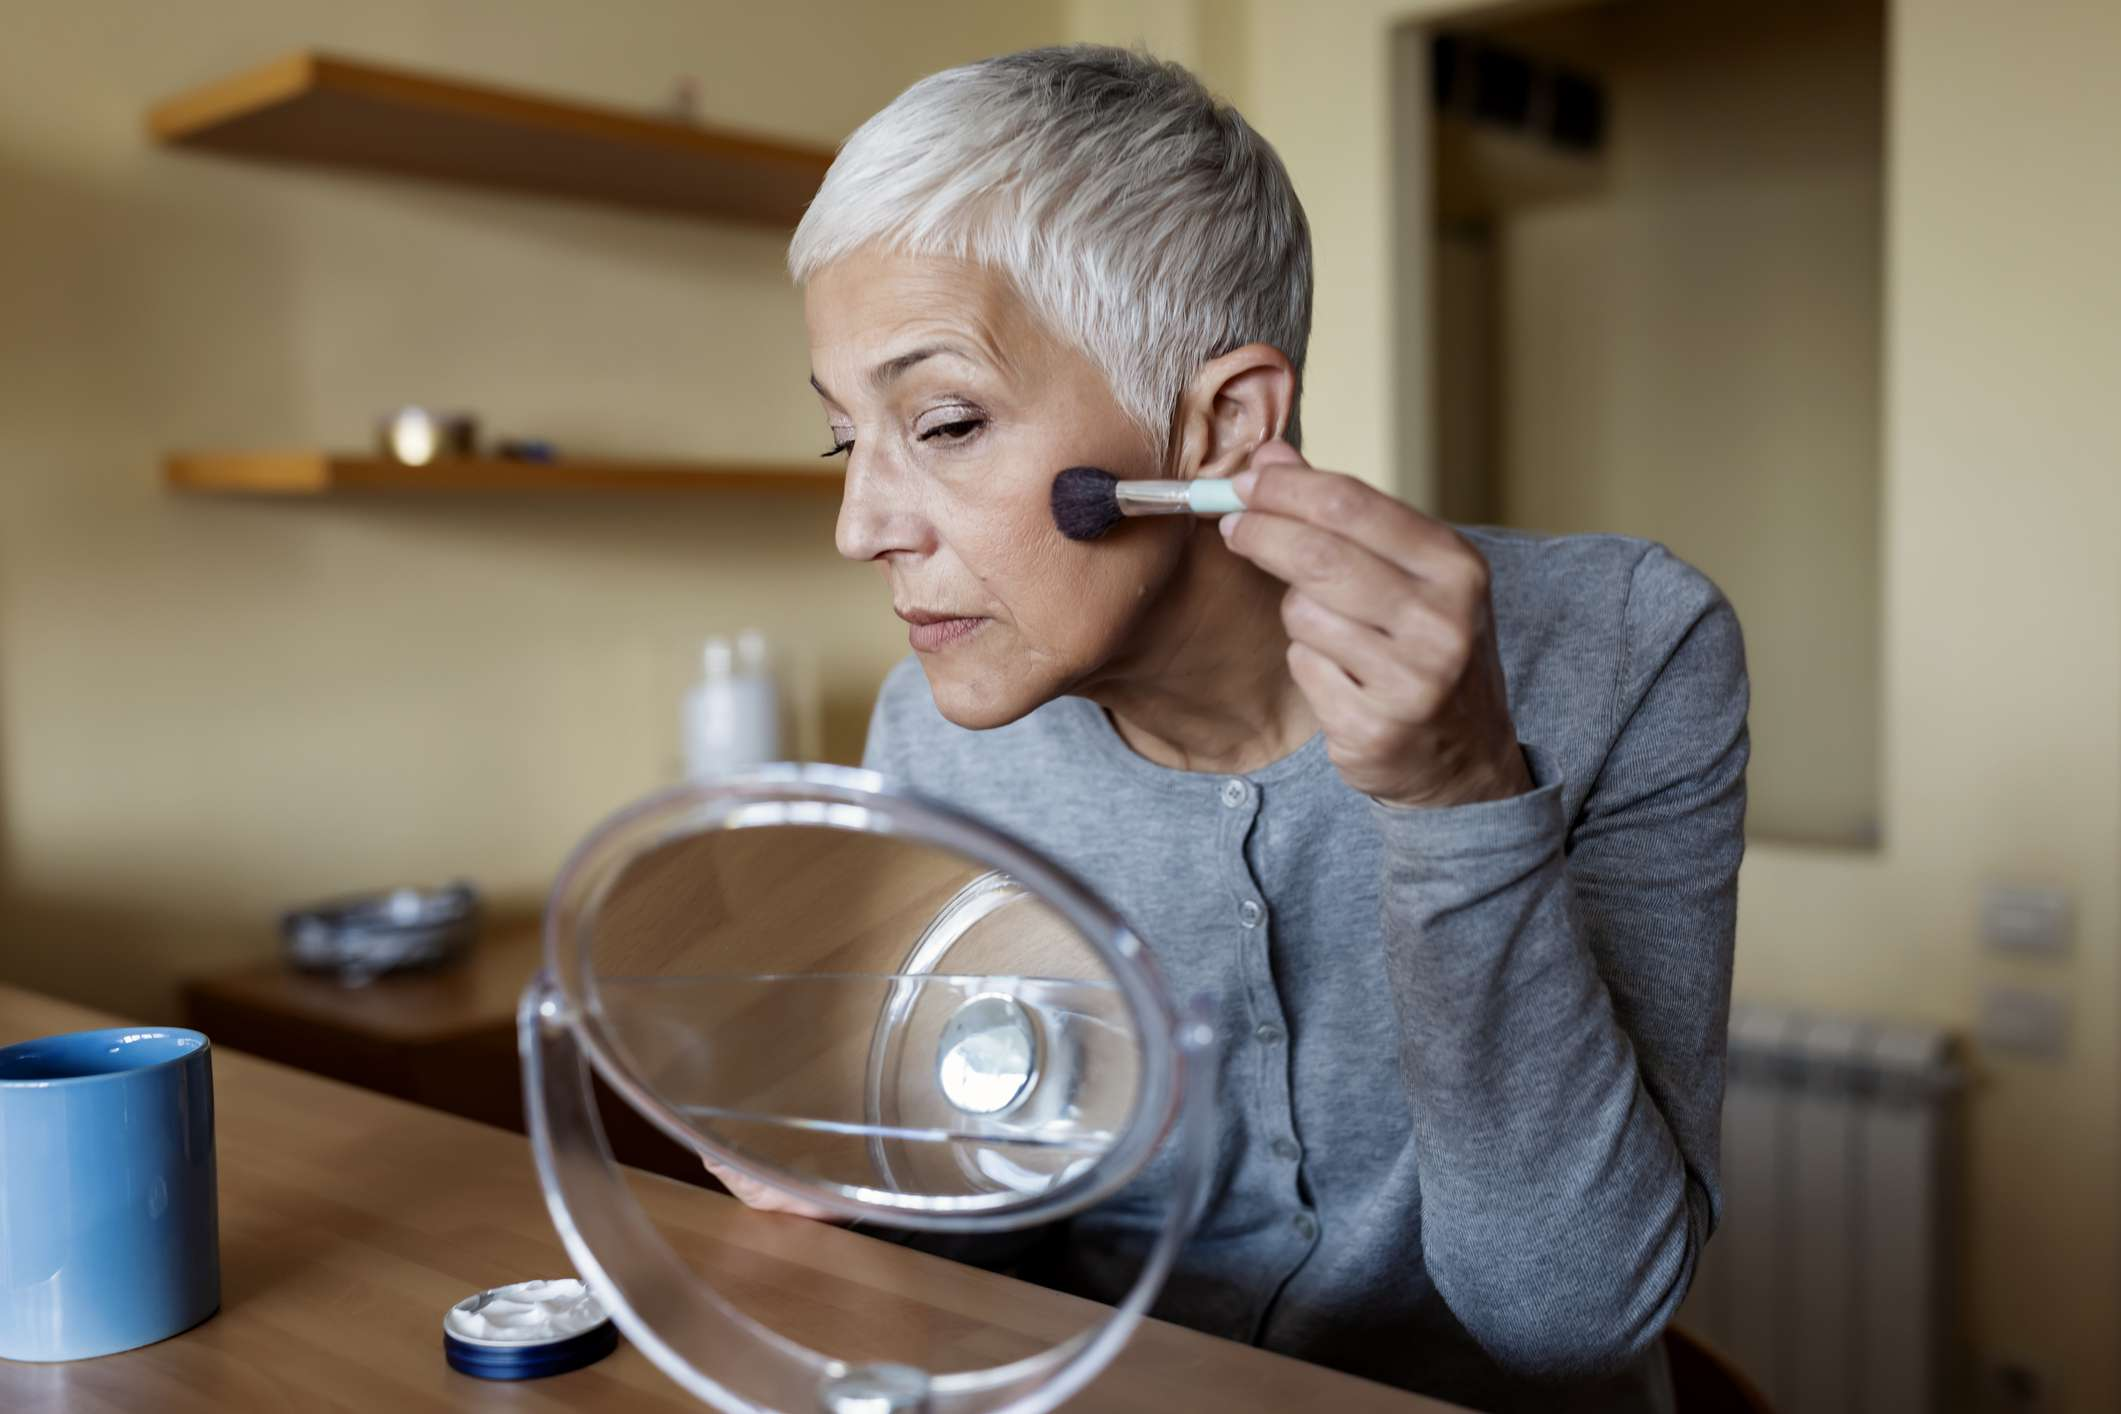 A mature woman with short silver hair applies blush to her face.